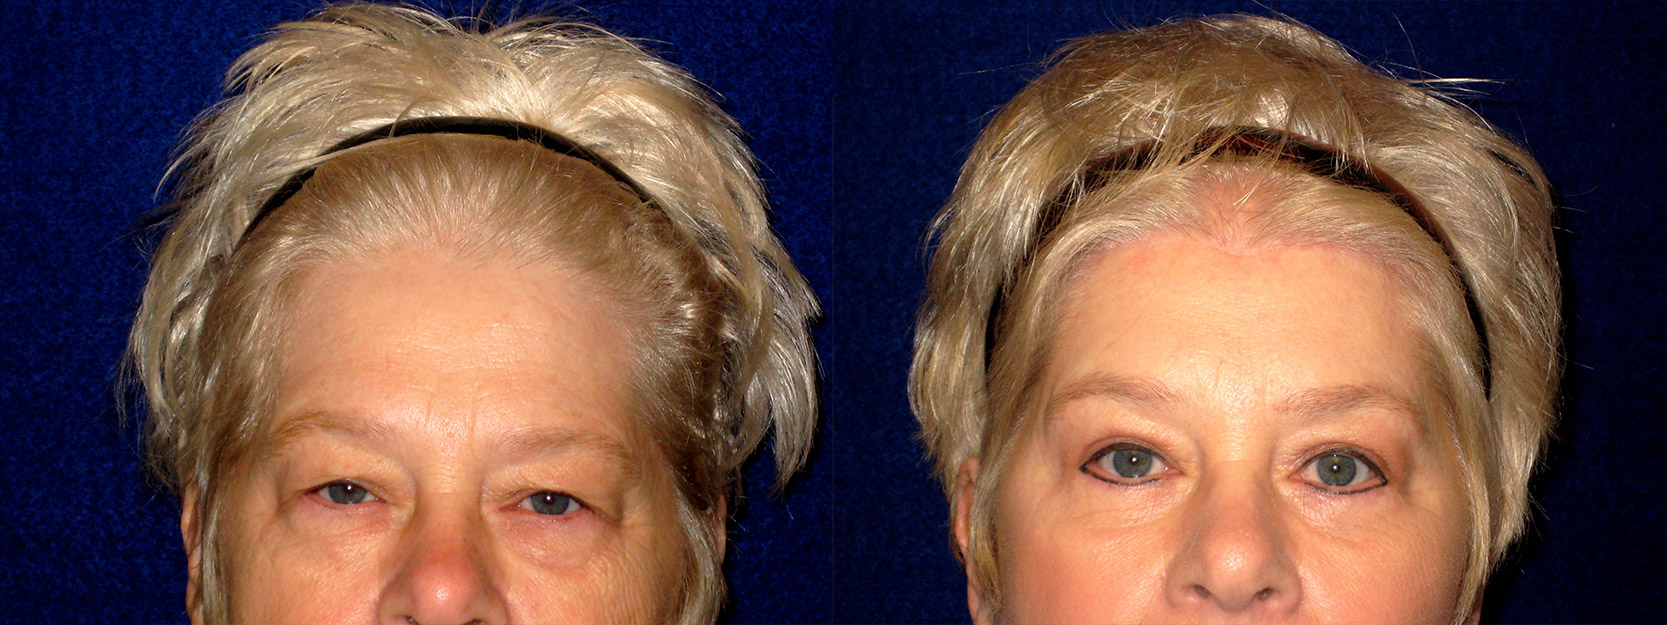 Frontal View - Upper & Lower Eyelid Surgery with Browlift